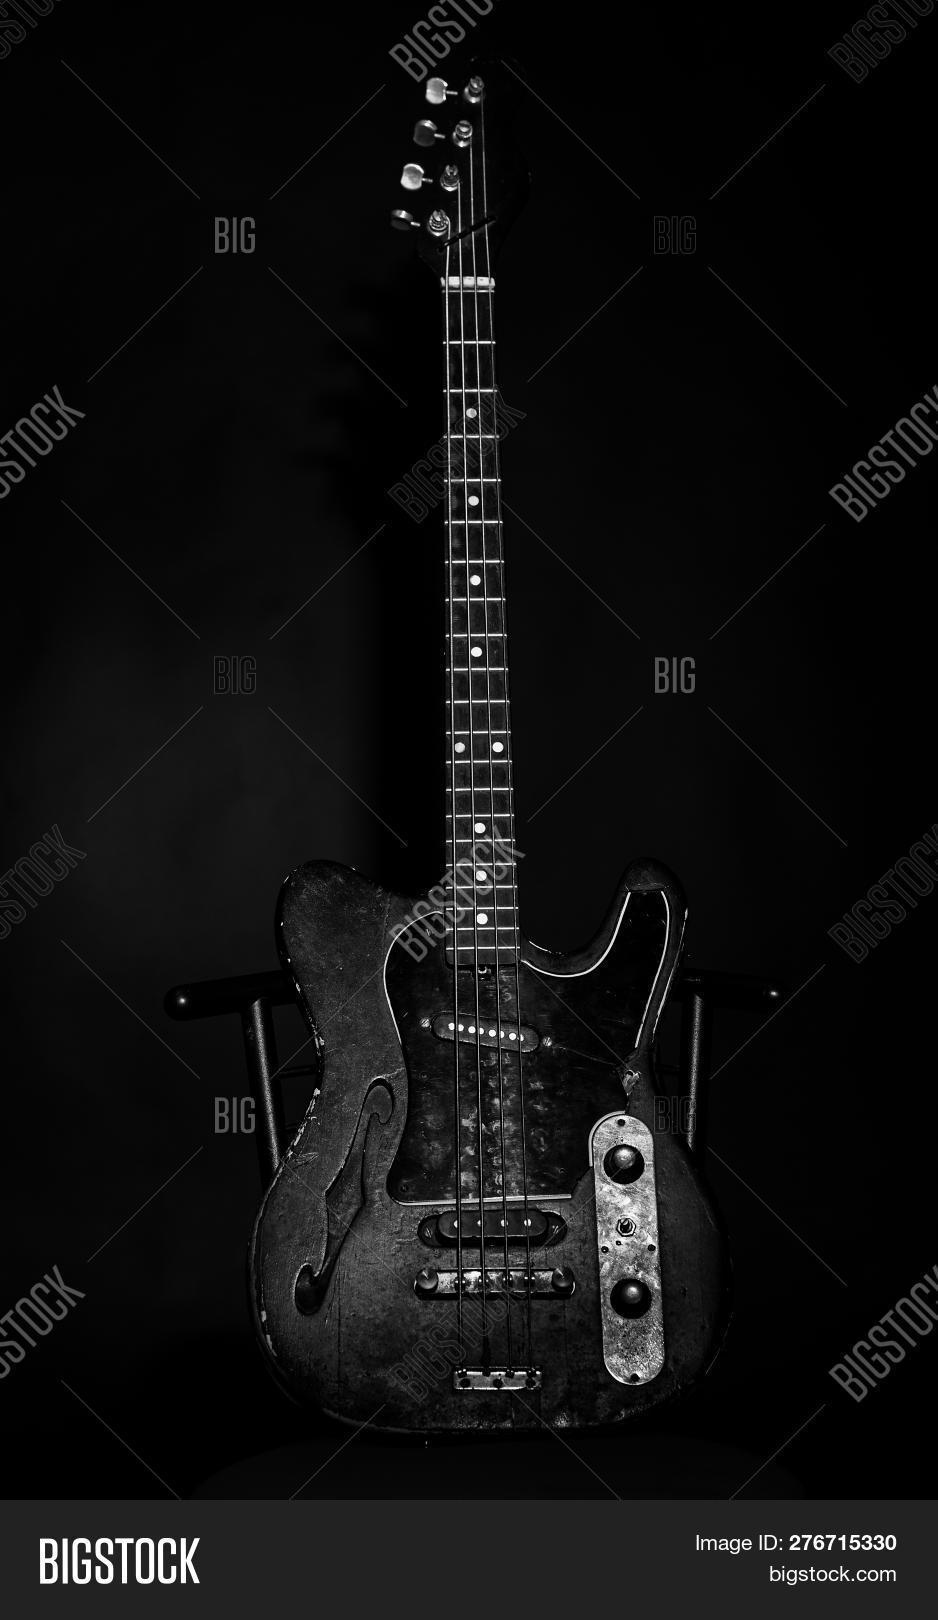 Music hard rock image photo free trial bigstock